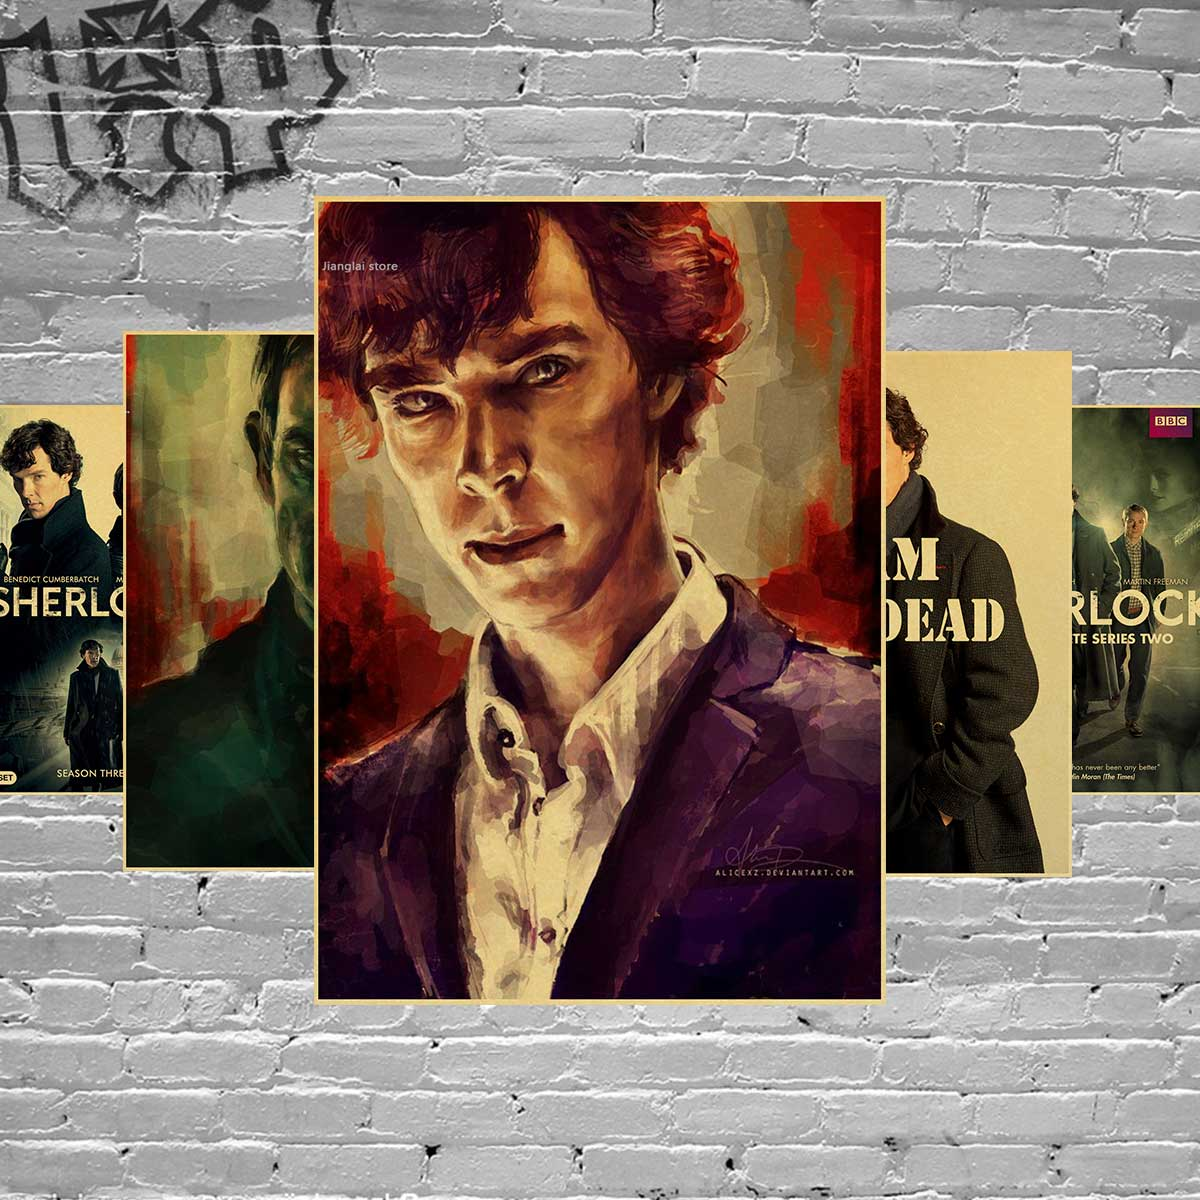 Tv Show Poster Friends American Drama Movie Vintage: Sherlock Holmes American TV Series Home Furnishing